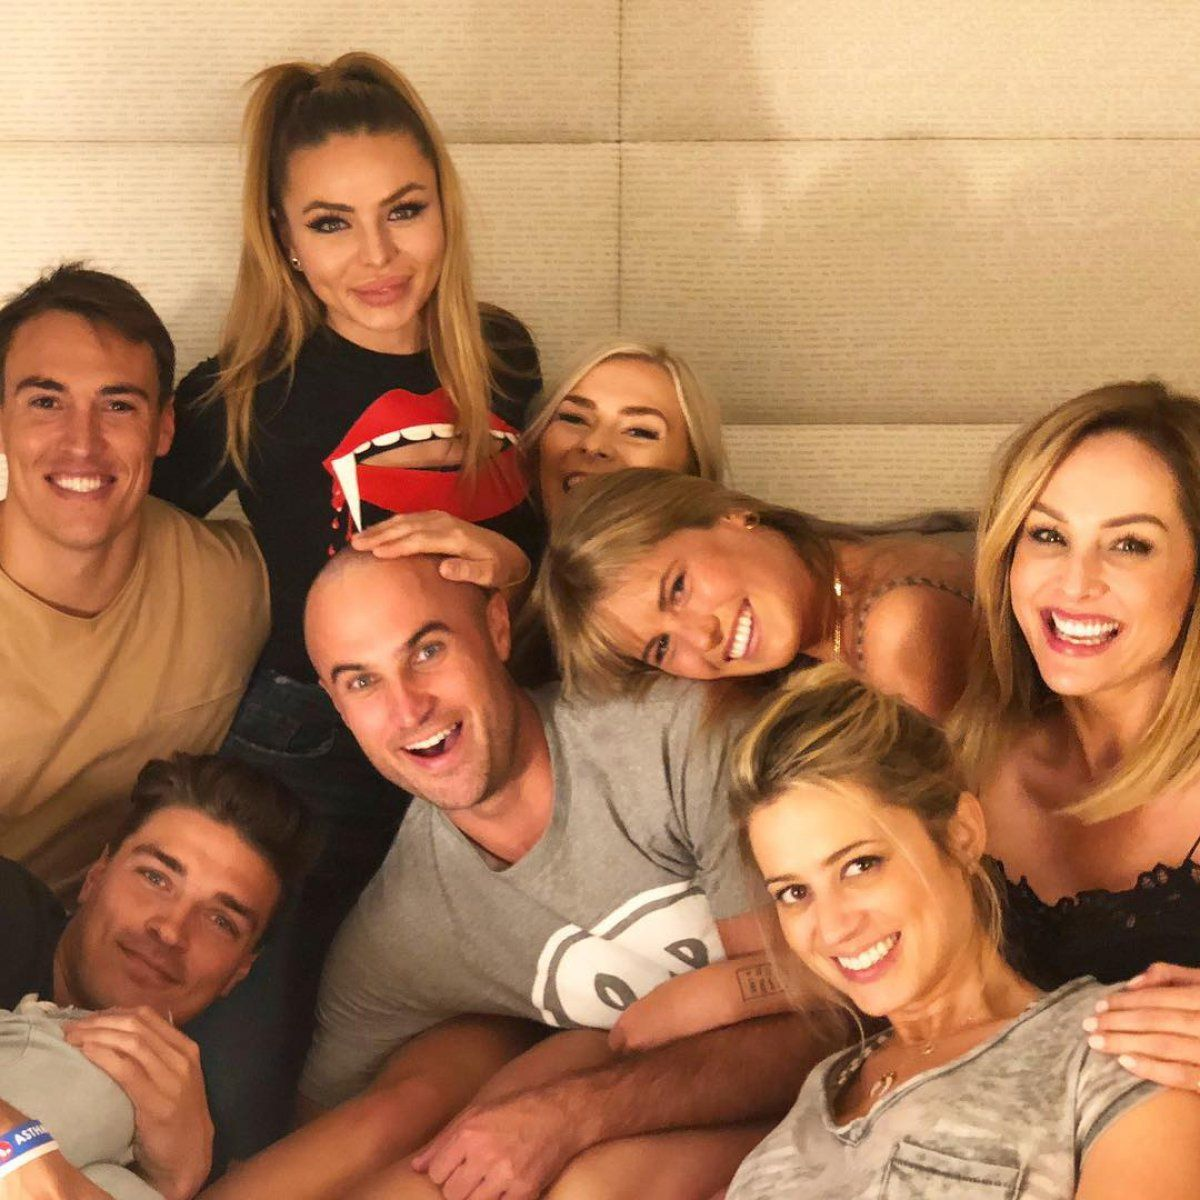 'The Bachelor Winter Games' forms three dating couples